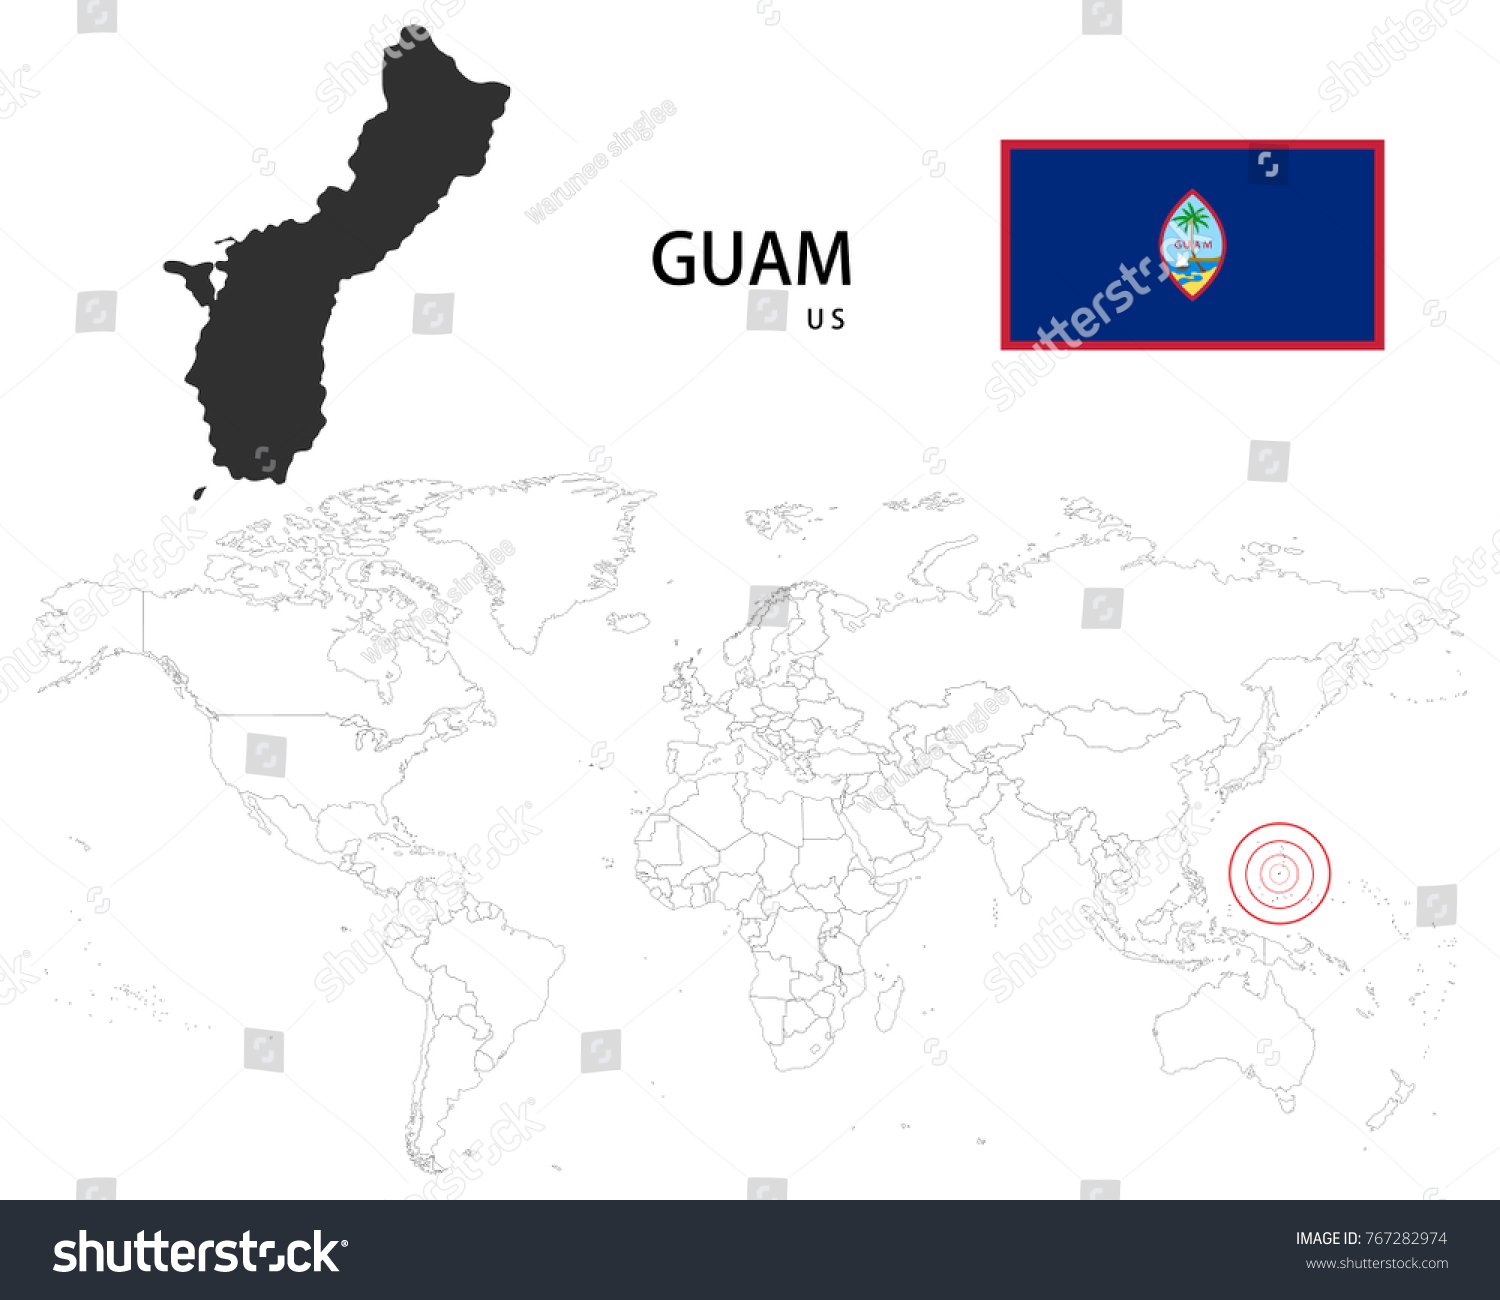 Guam us map on world map stock vector 767282974 shutterstock gumiabroncs Image collections